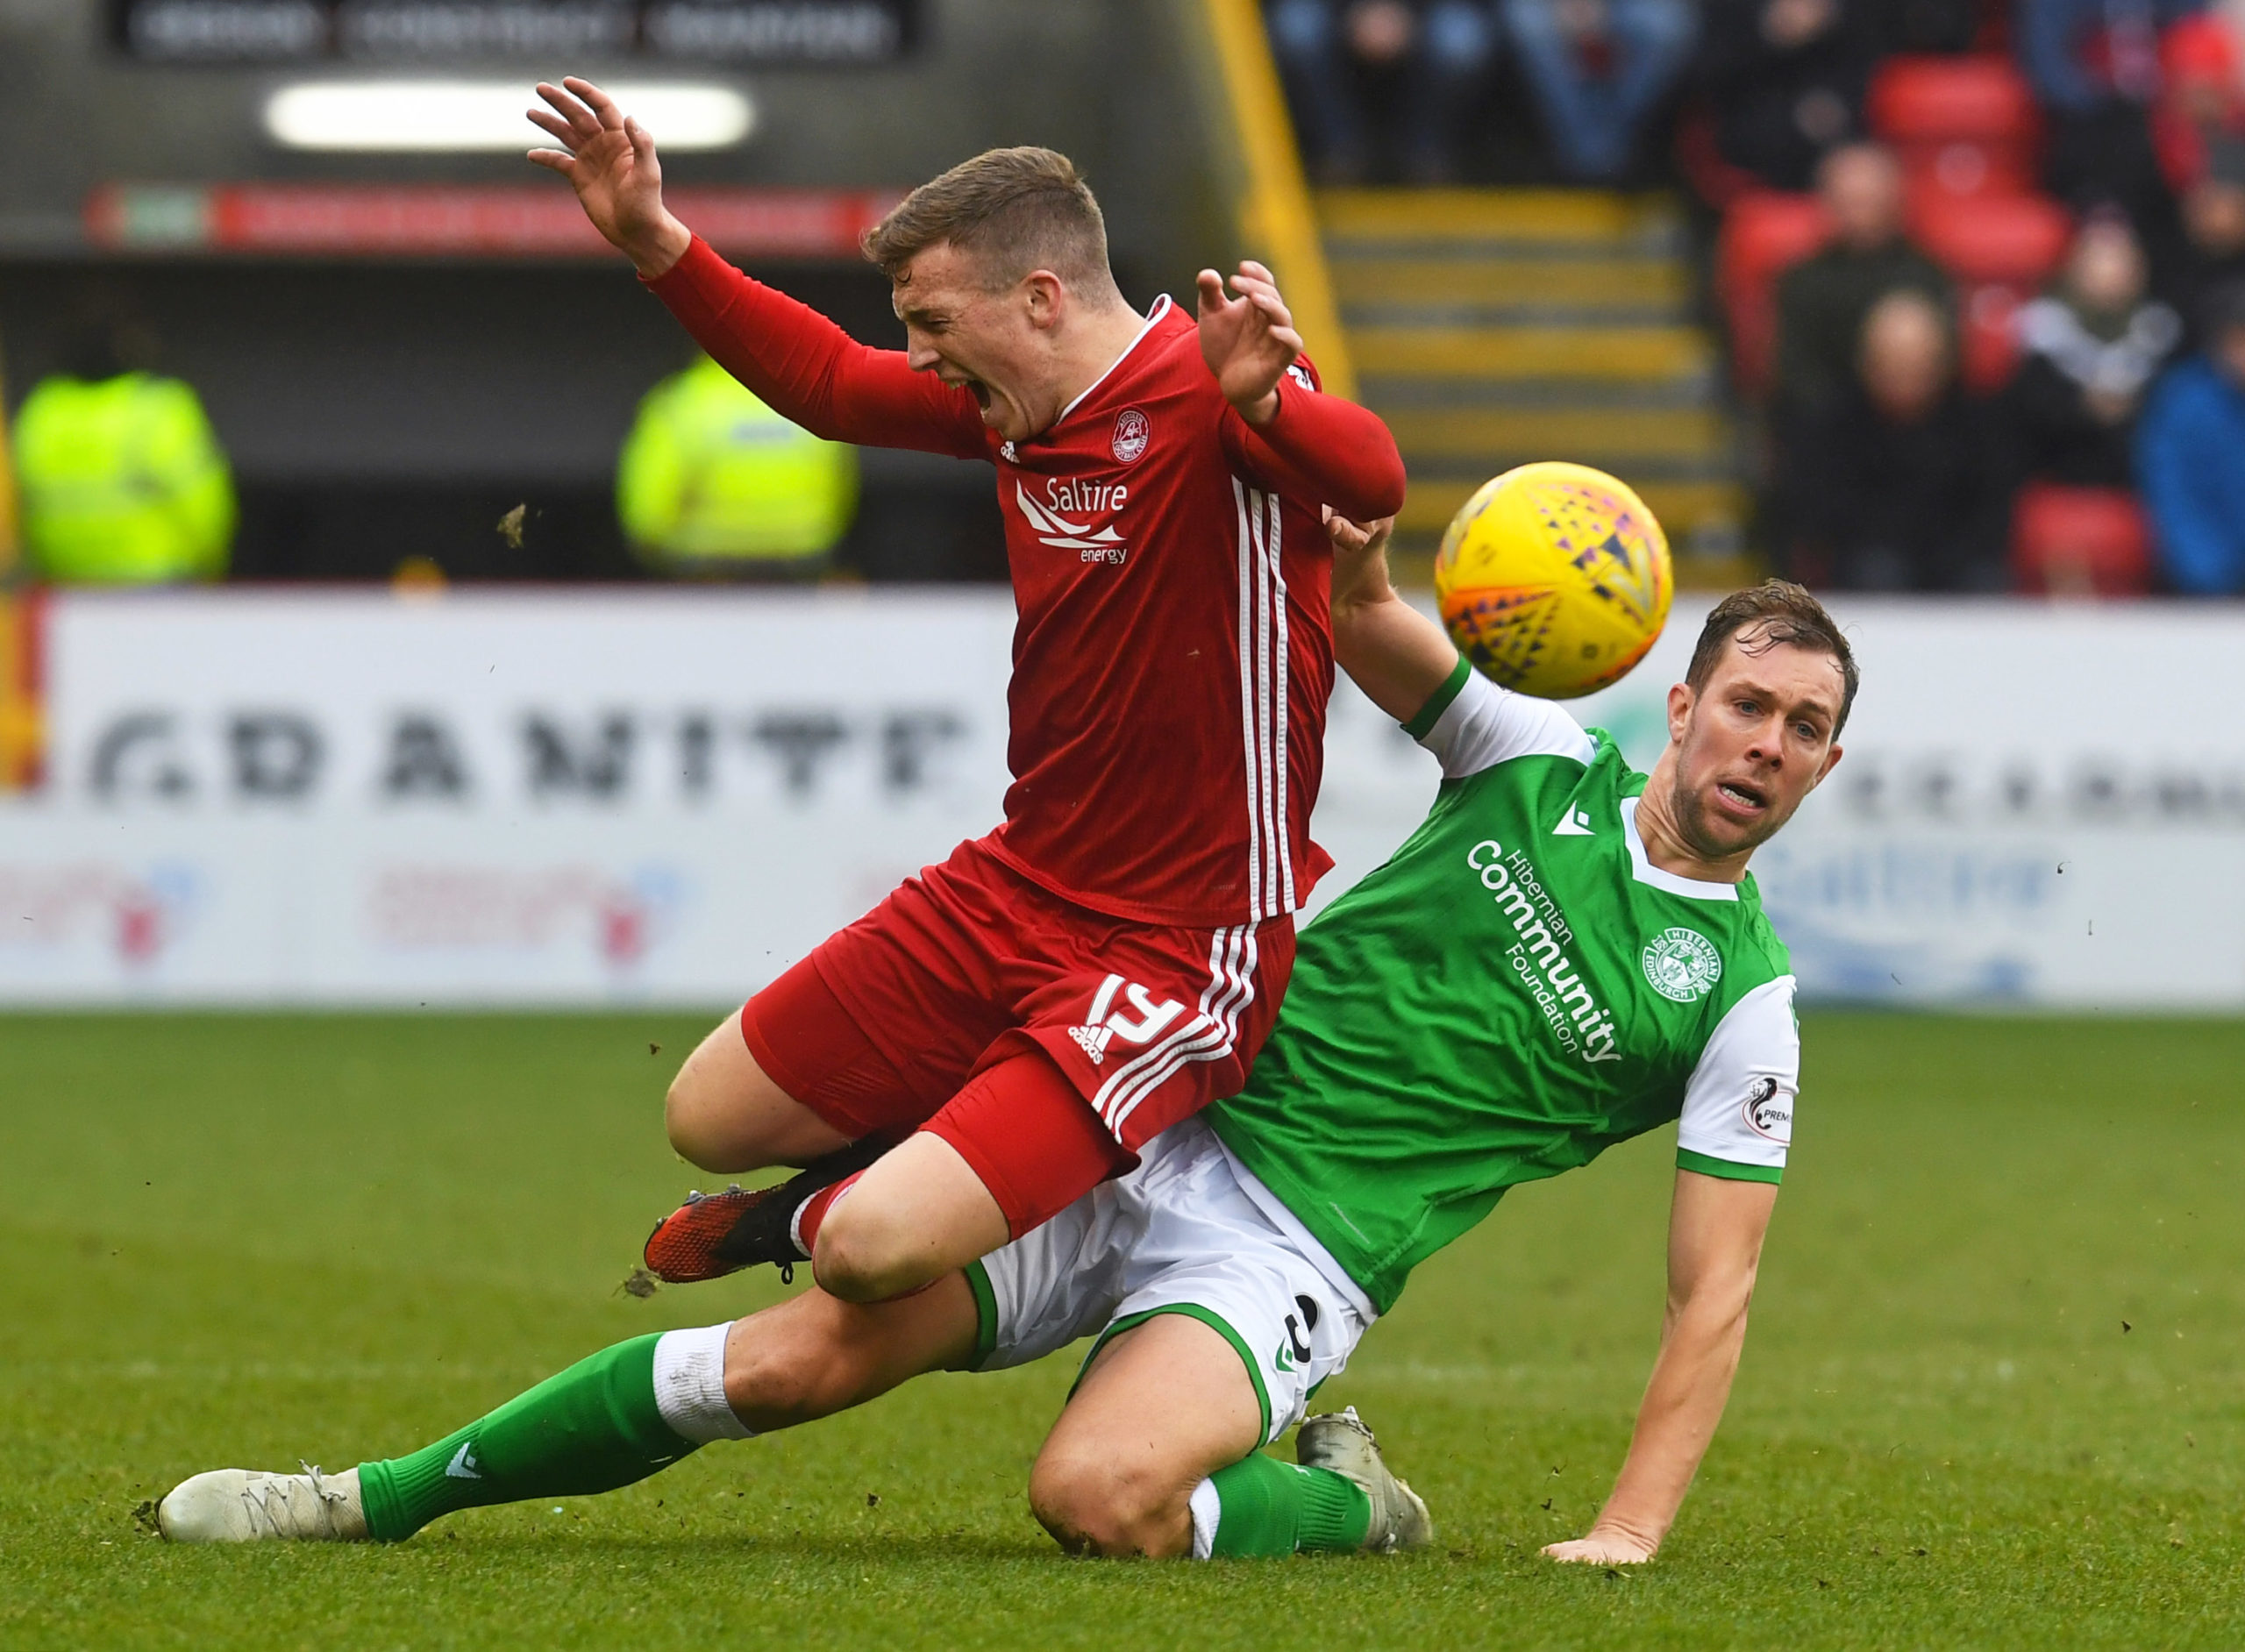 The challenge which saw Steven Whittaker receive his second yellow card.